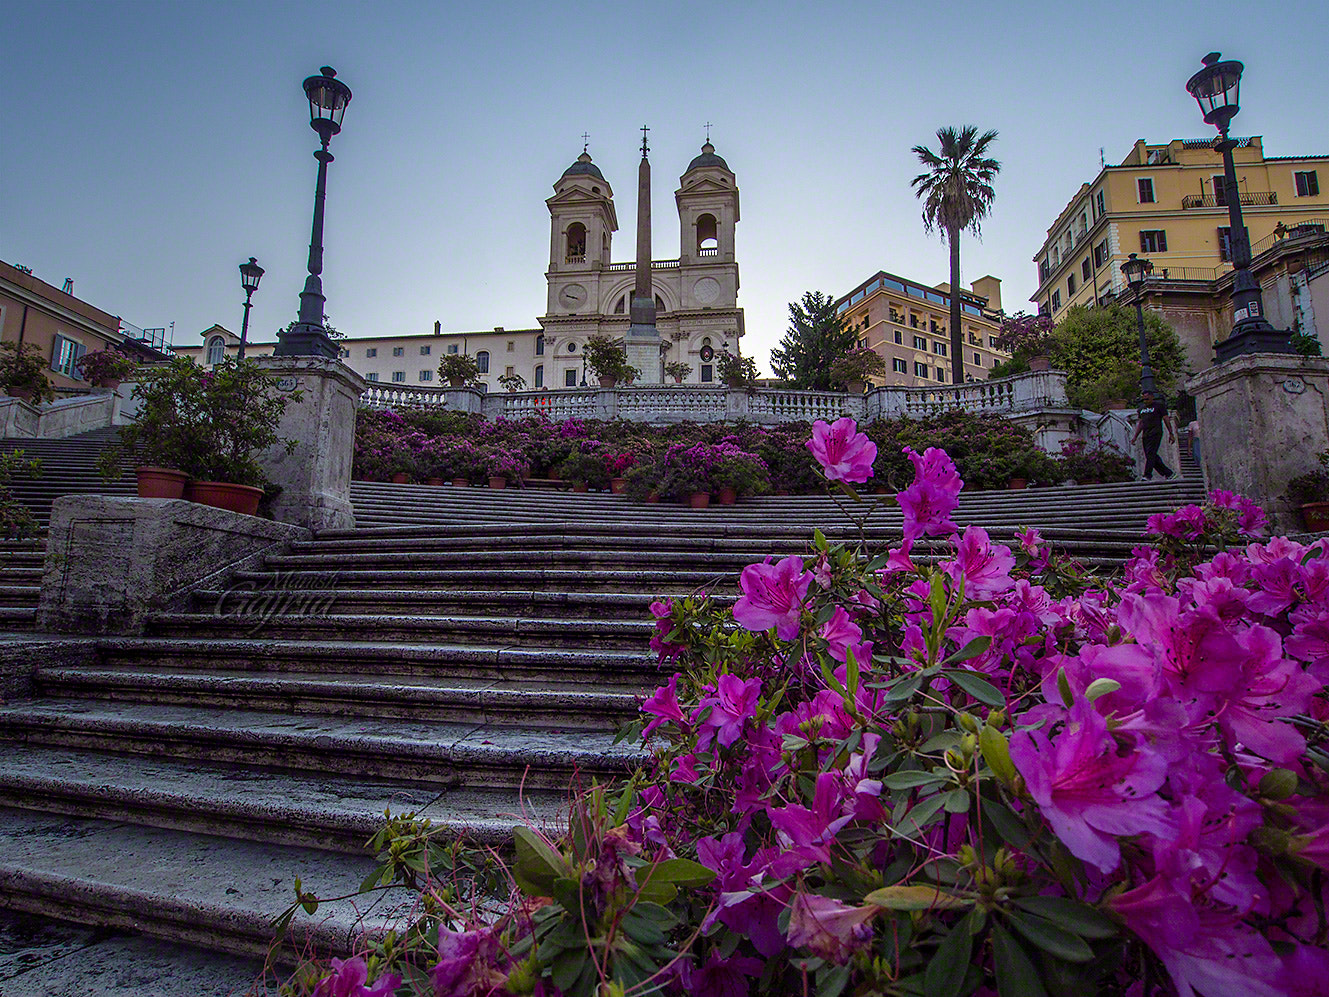 Photograph Bloom at Spanish Steps by Manish Gajria on 500px